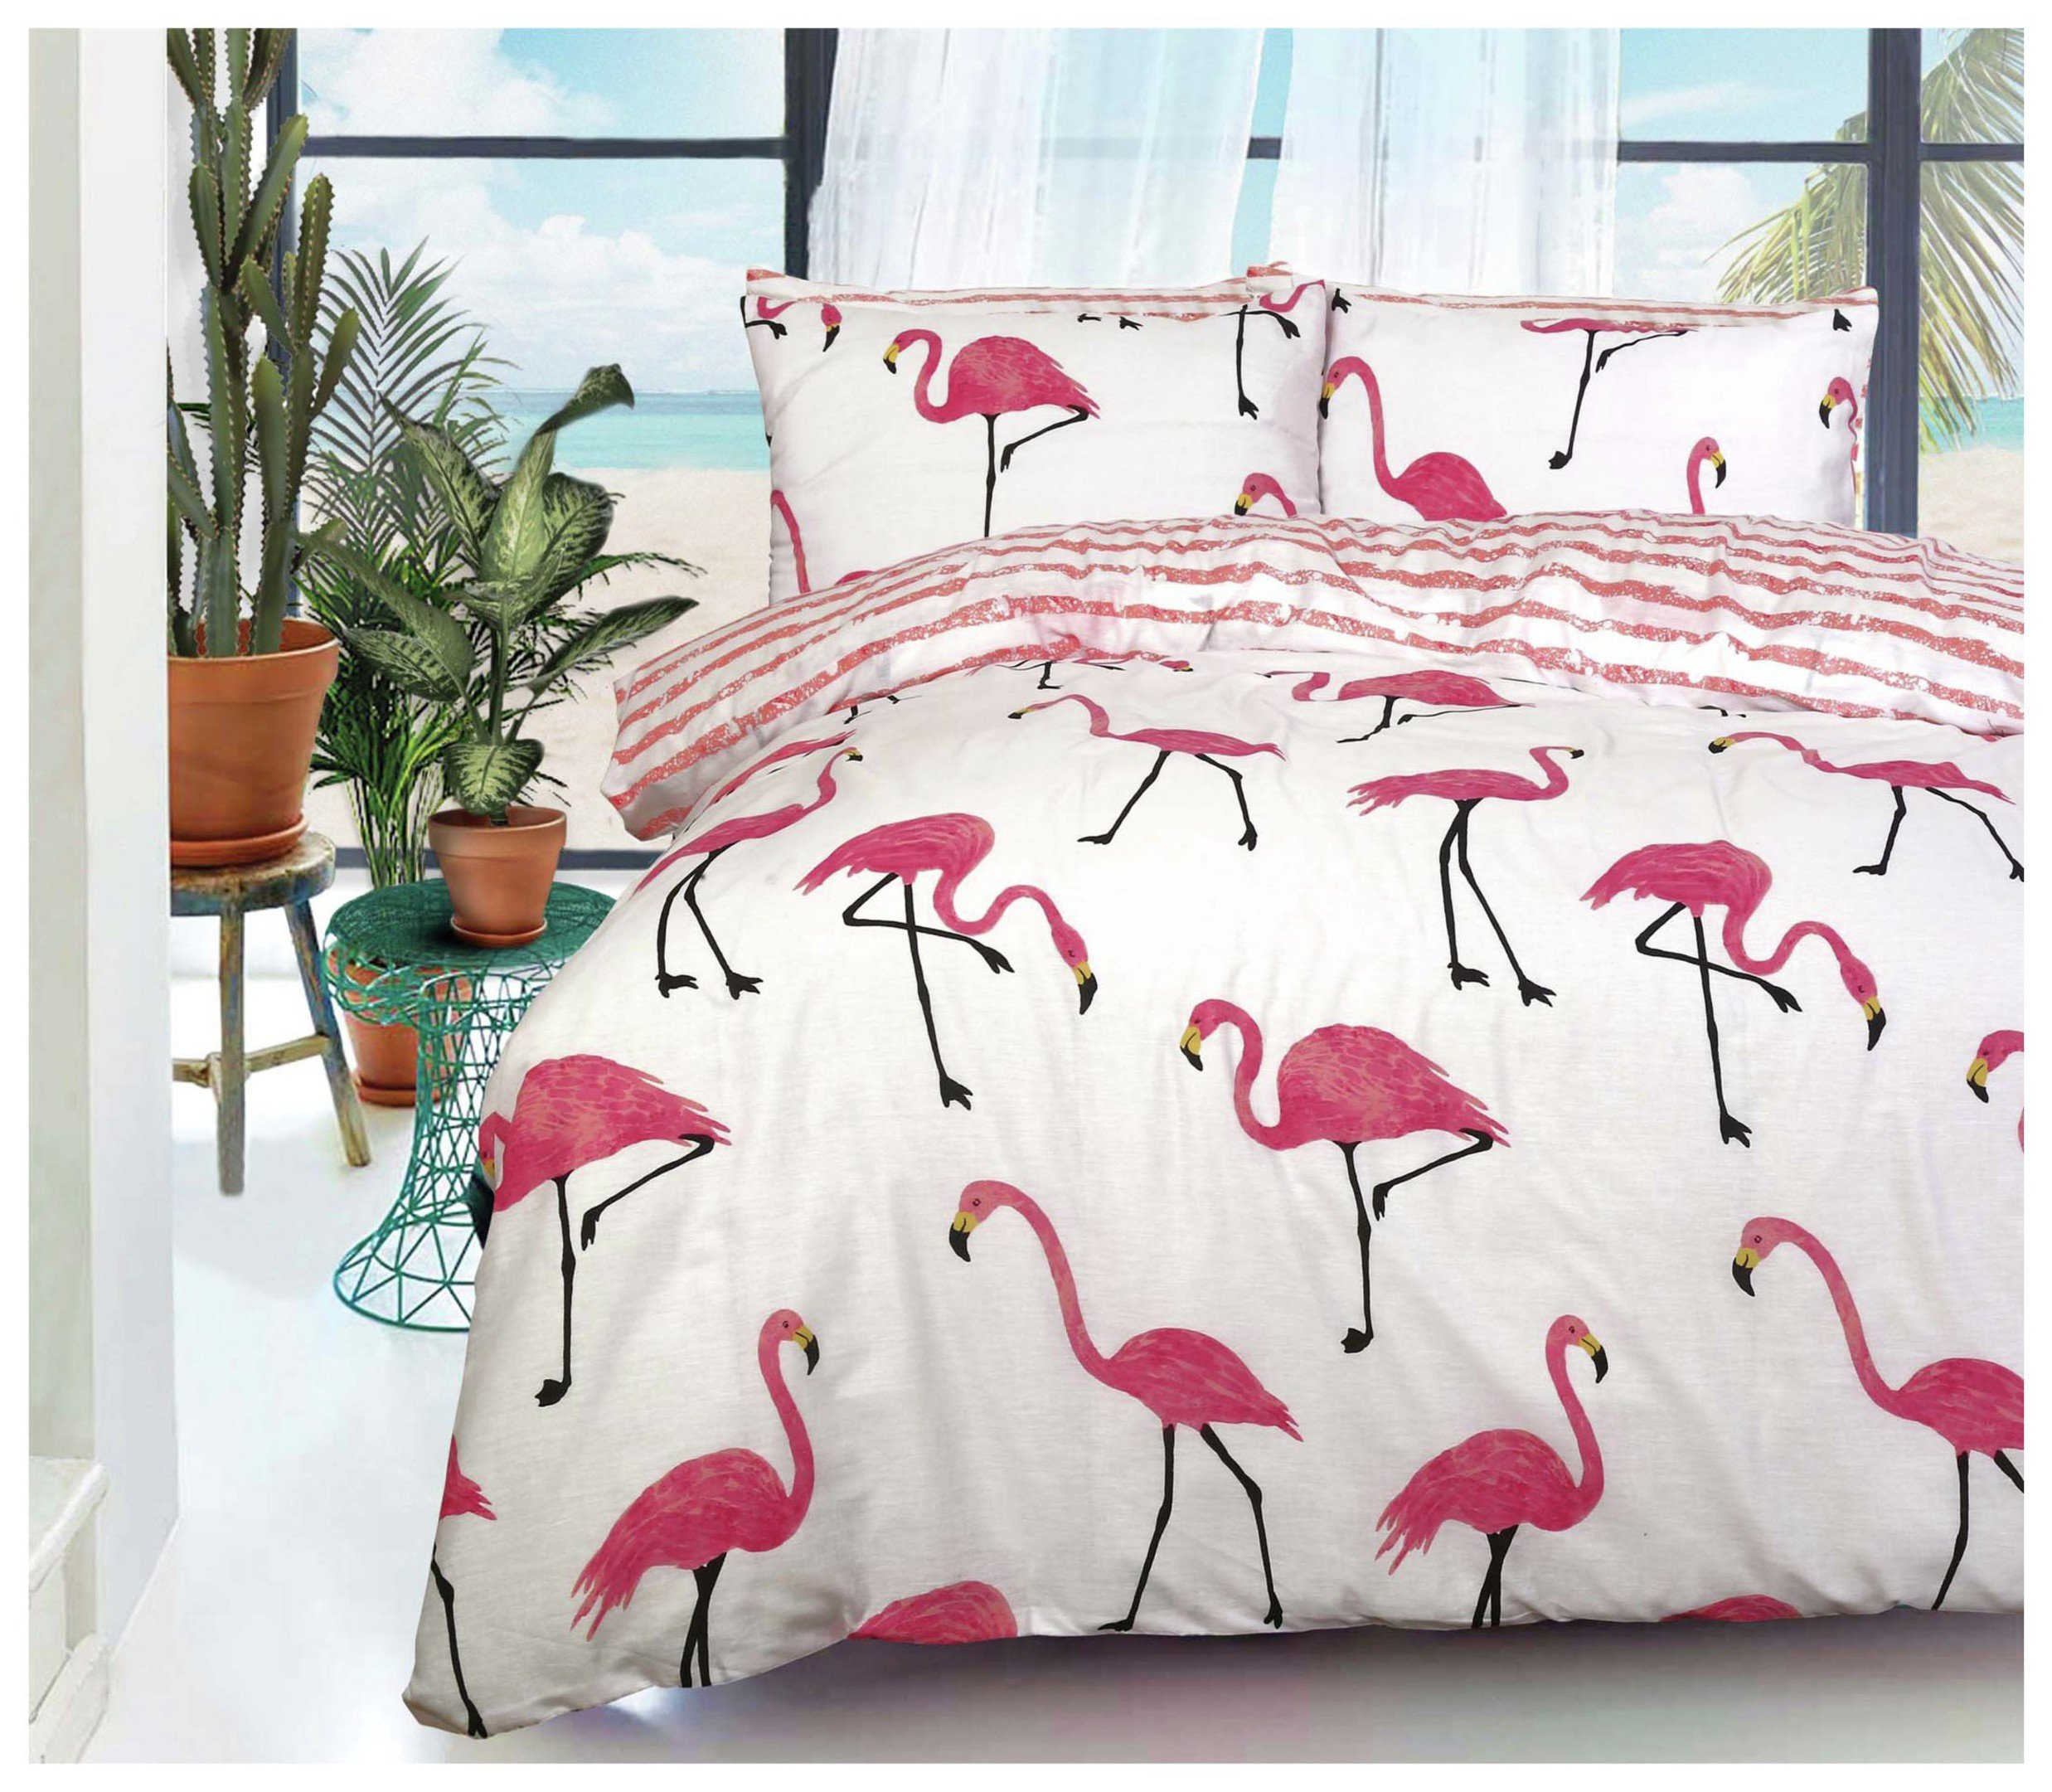 Pieridae Flamingo Bedding Set - Kingsize